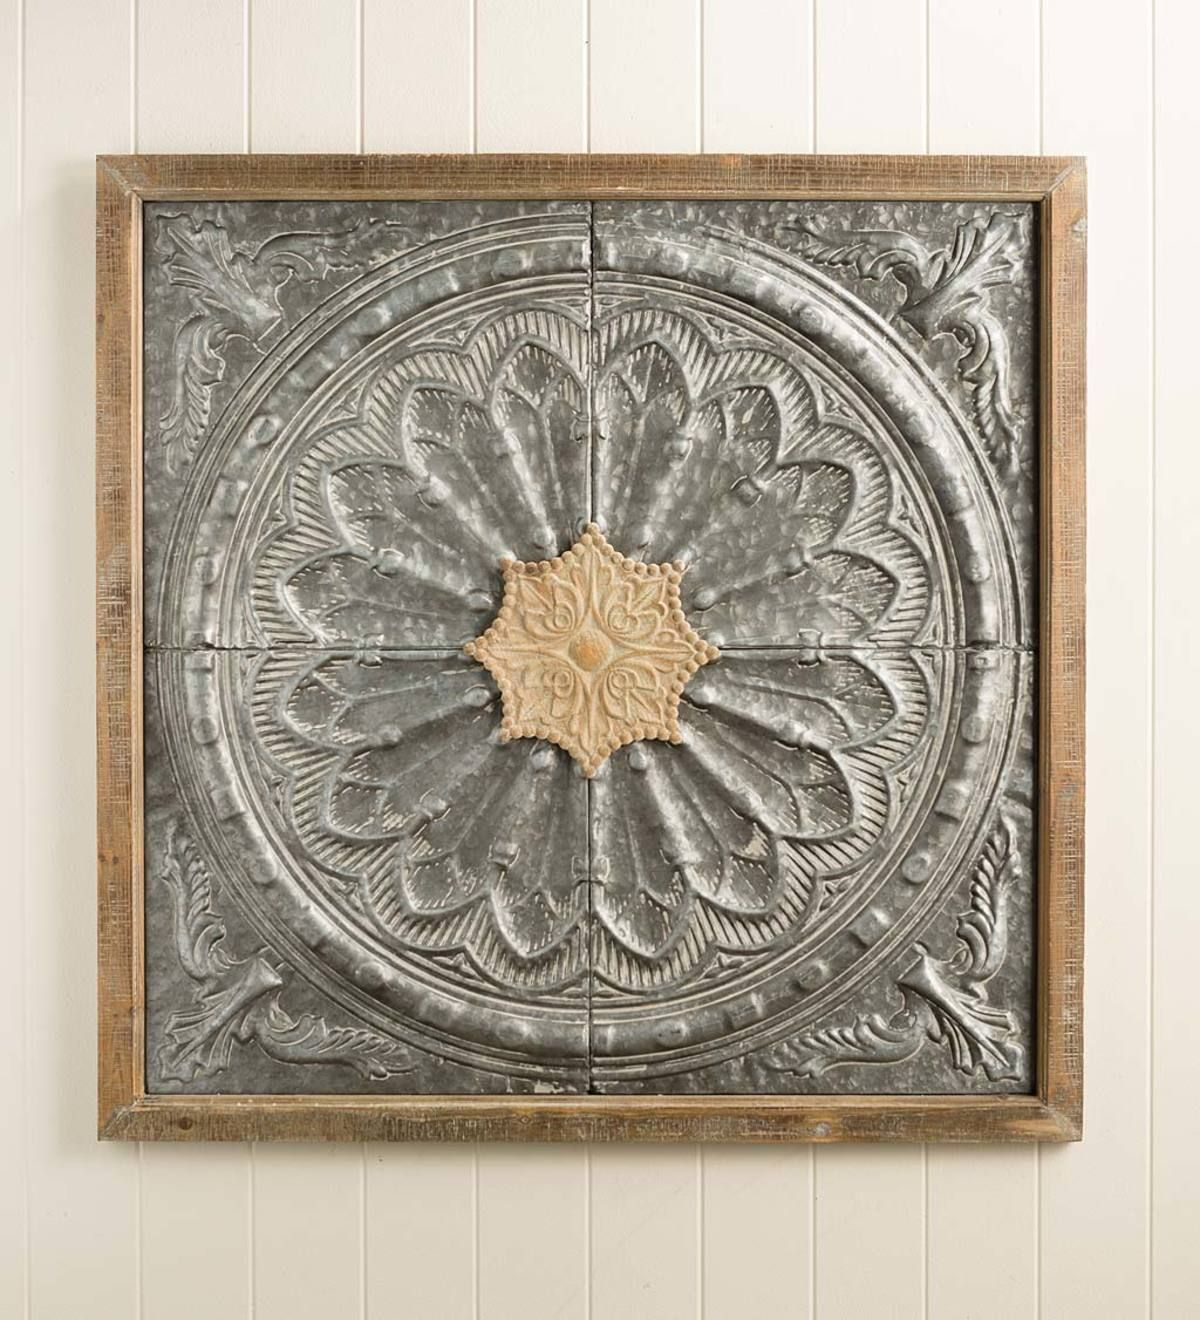 Our Antiqued Metal Medallion Wall Art Is A Statement Piece For Your Home At Nearly 3 Square Th Medallion Wall Art Pressed Metal Ceiling Medallion Wall Decor